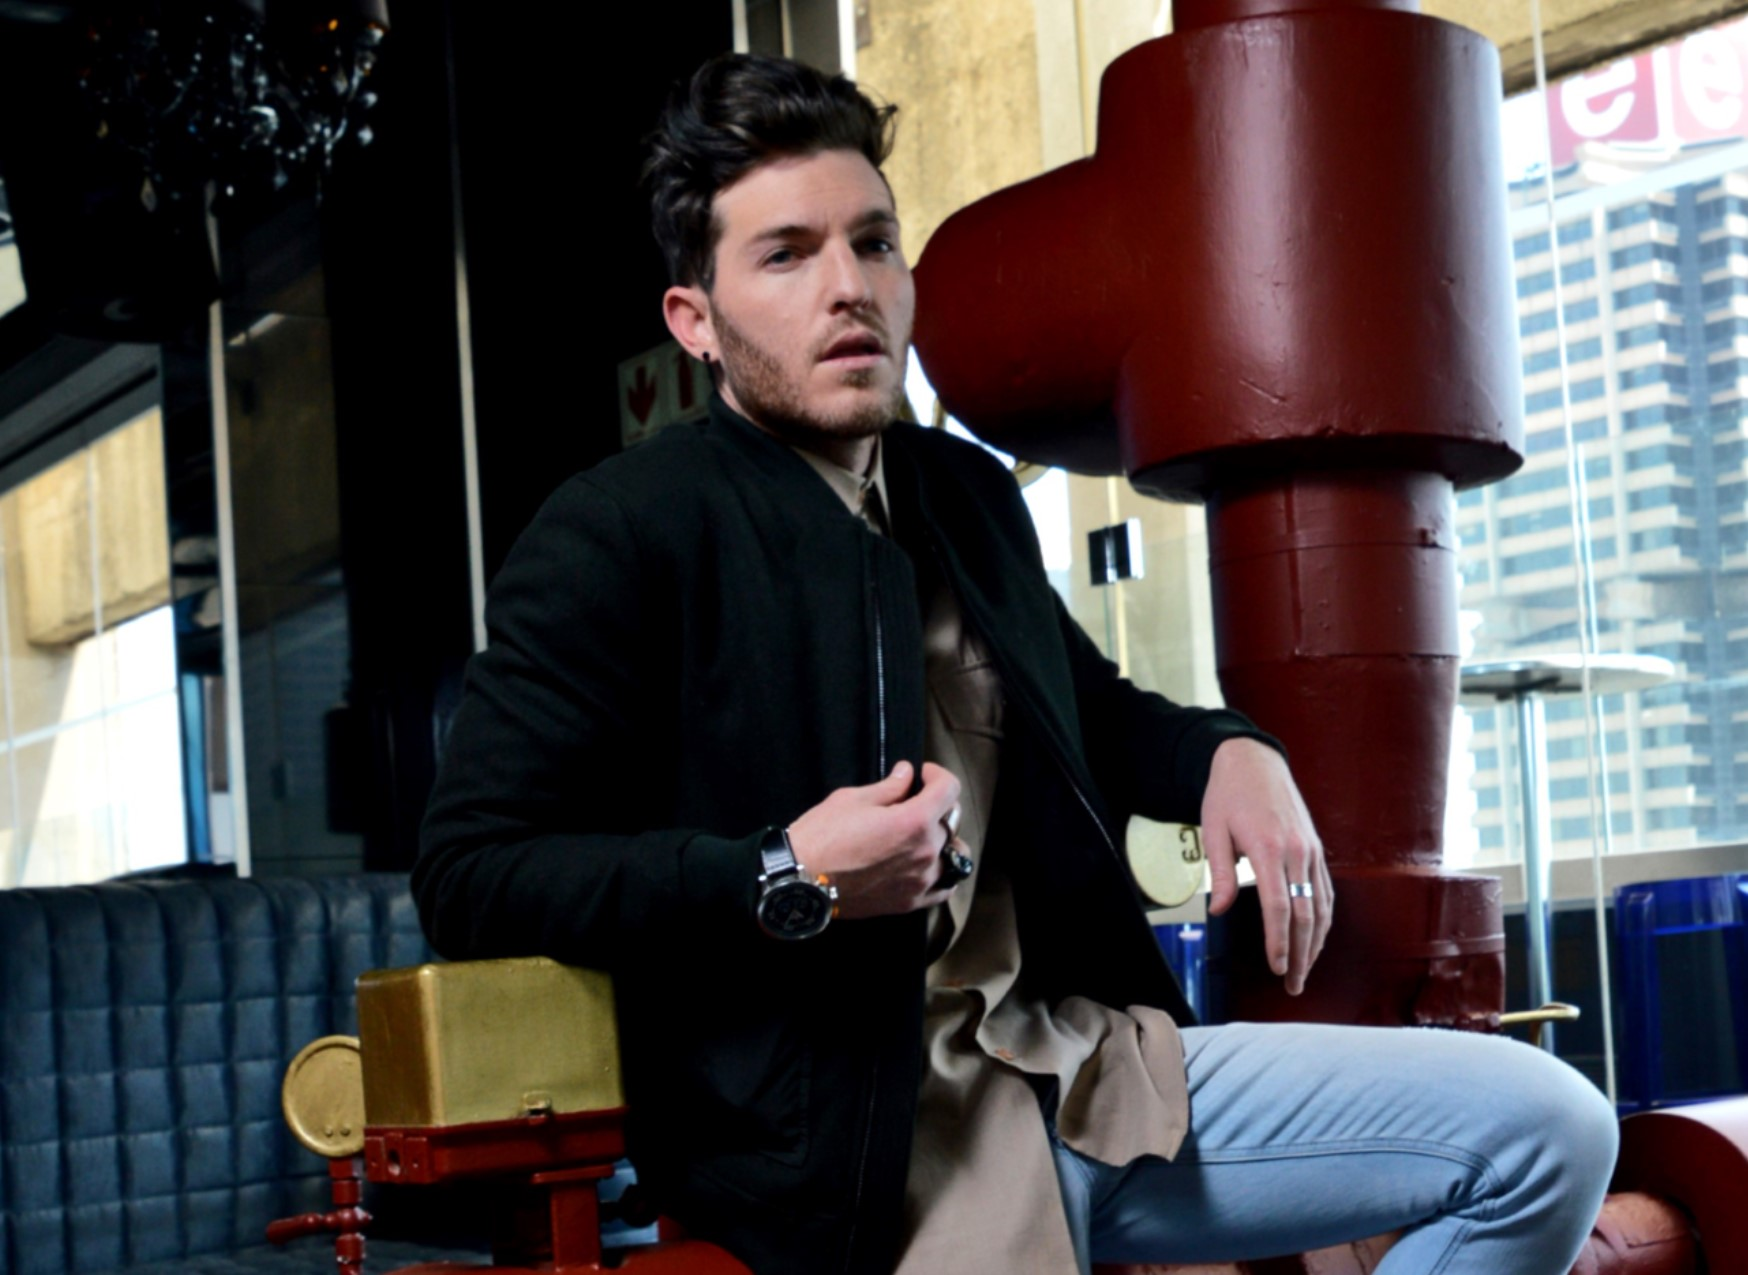 Going back to Idols changed my life – Kyle Deutsch